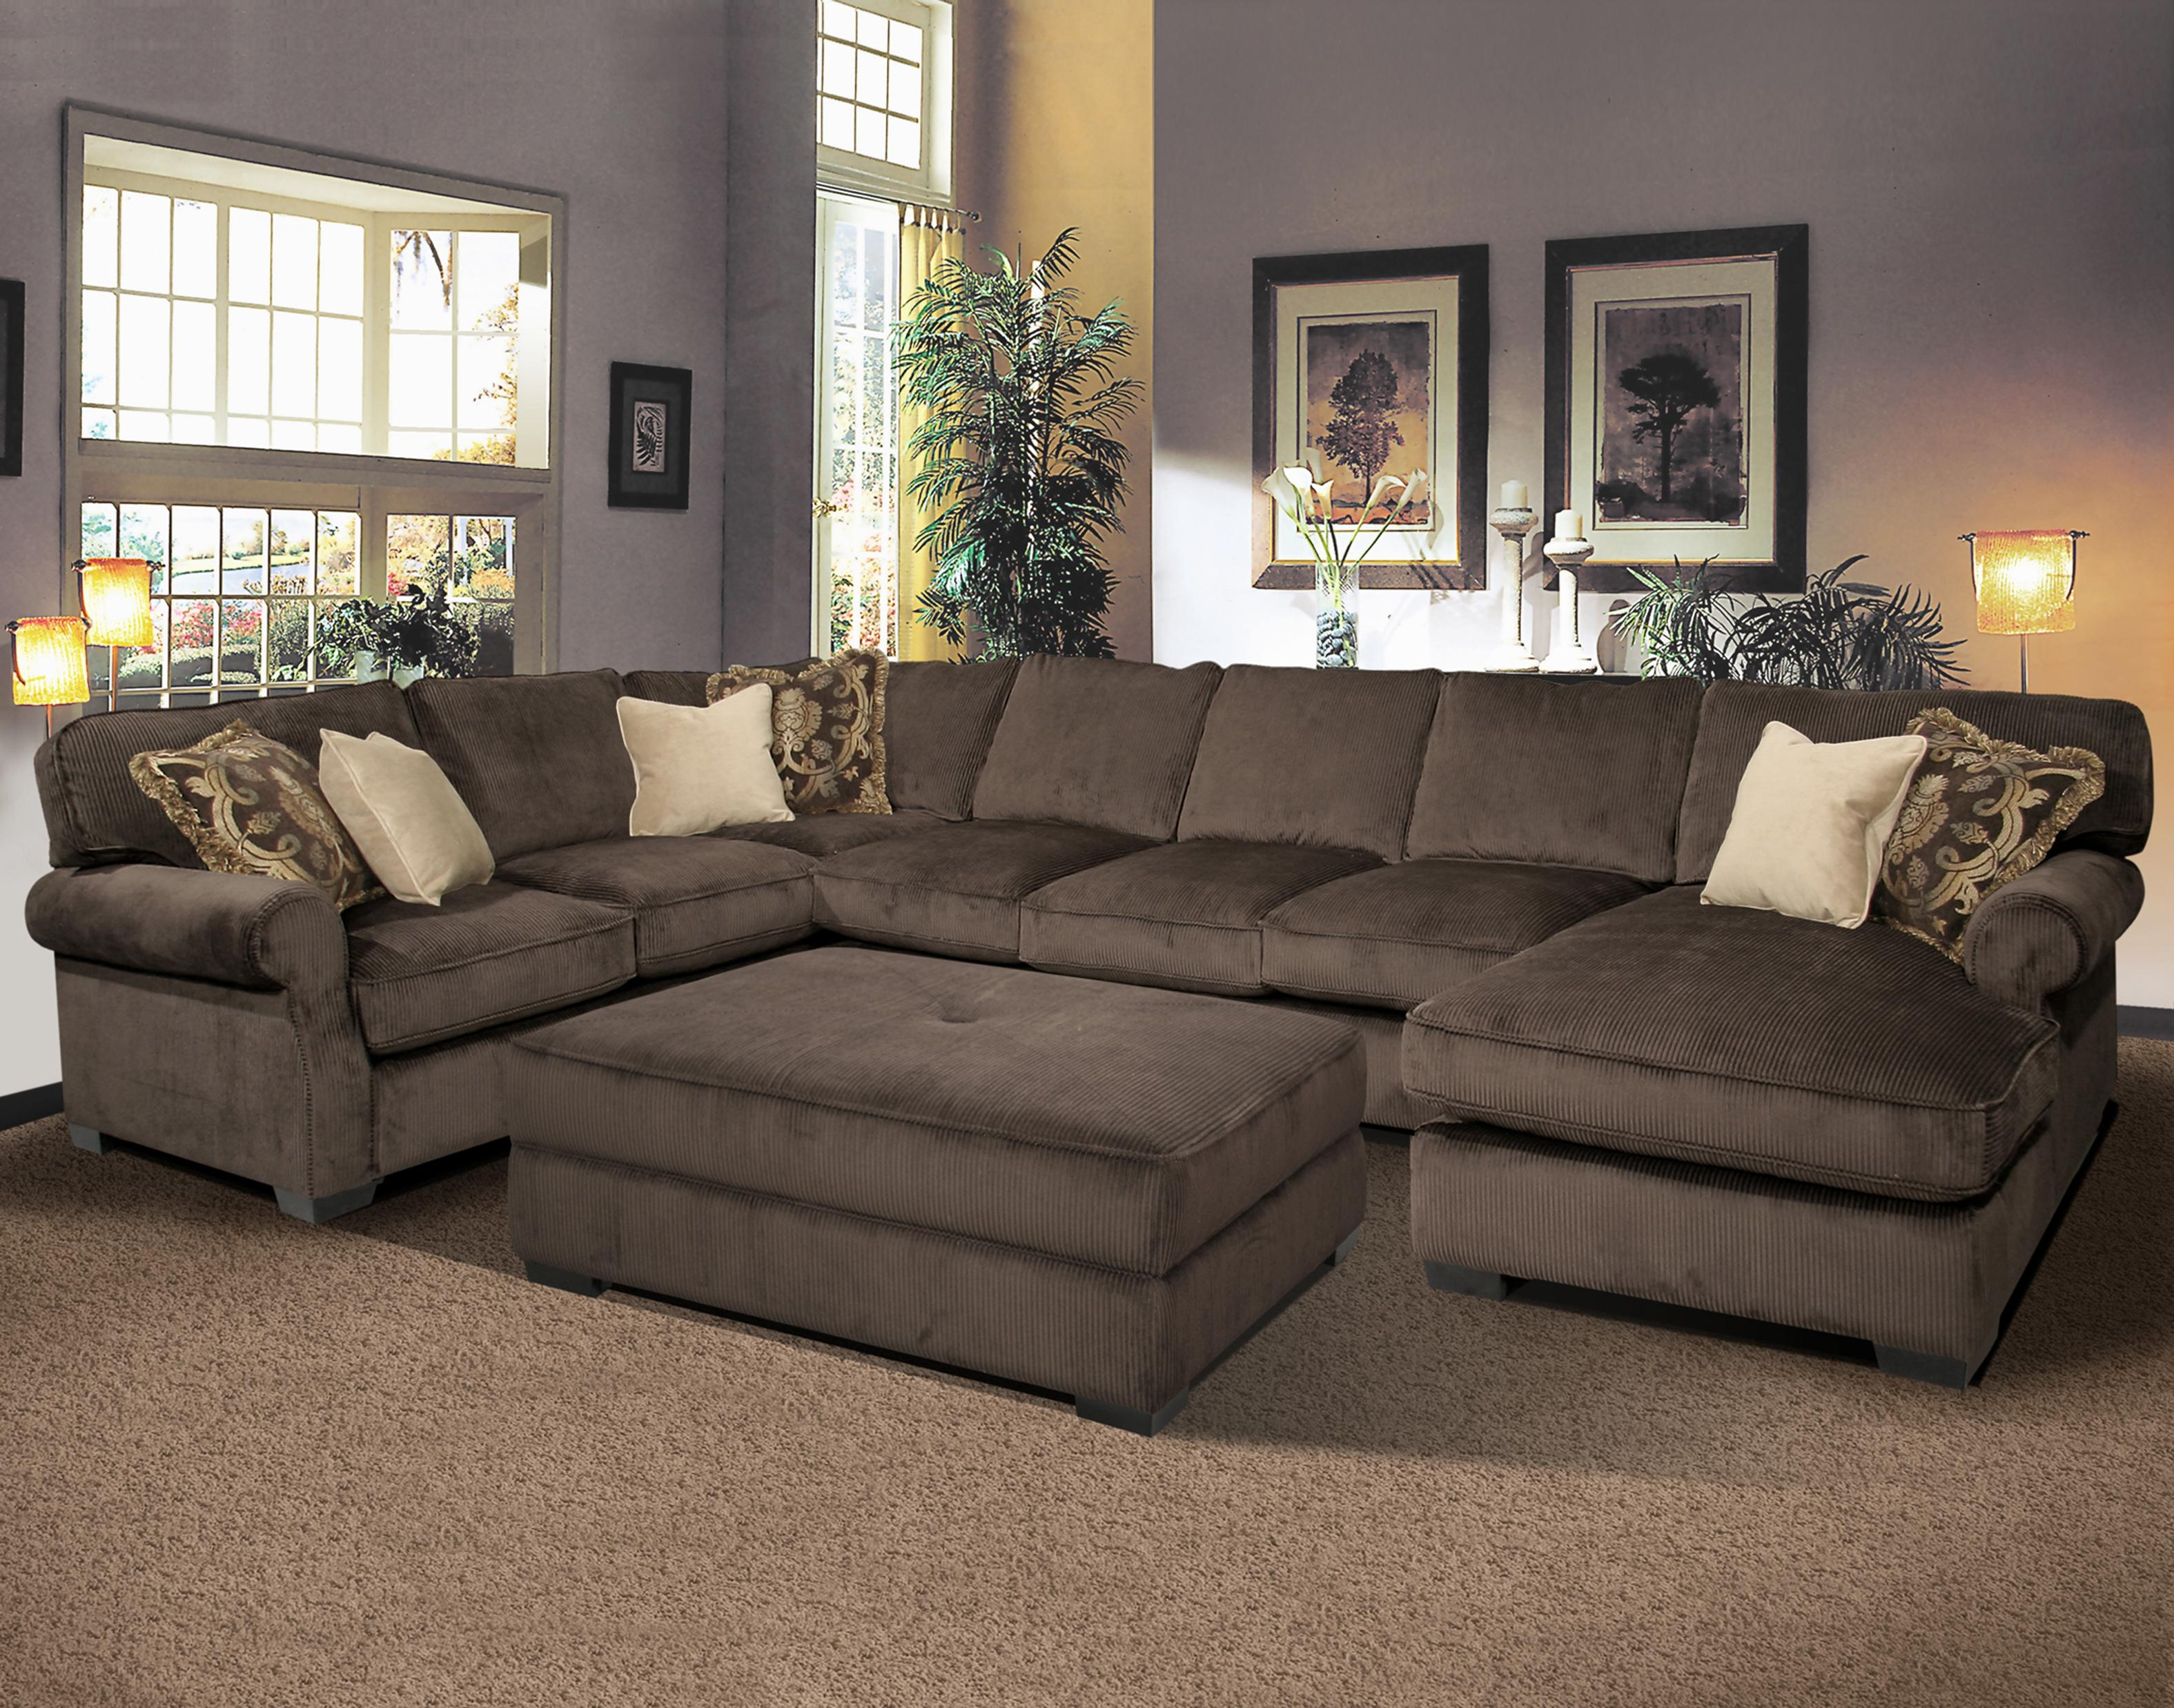 25 Best Ideas About Large Sectional Sofa On Pinterest Inside Extra Wide Sectional Sofas (View 2 of 12)